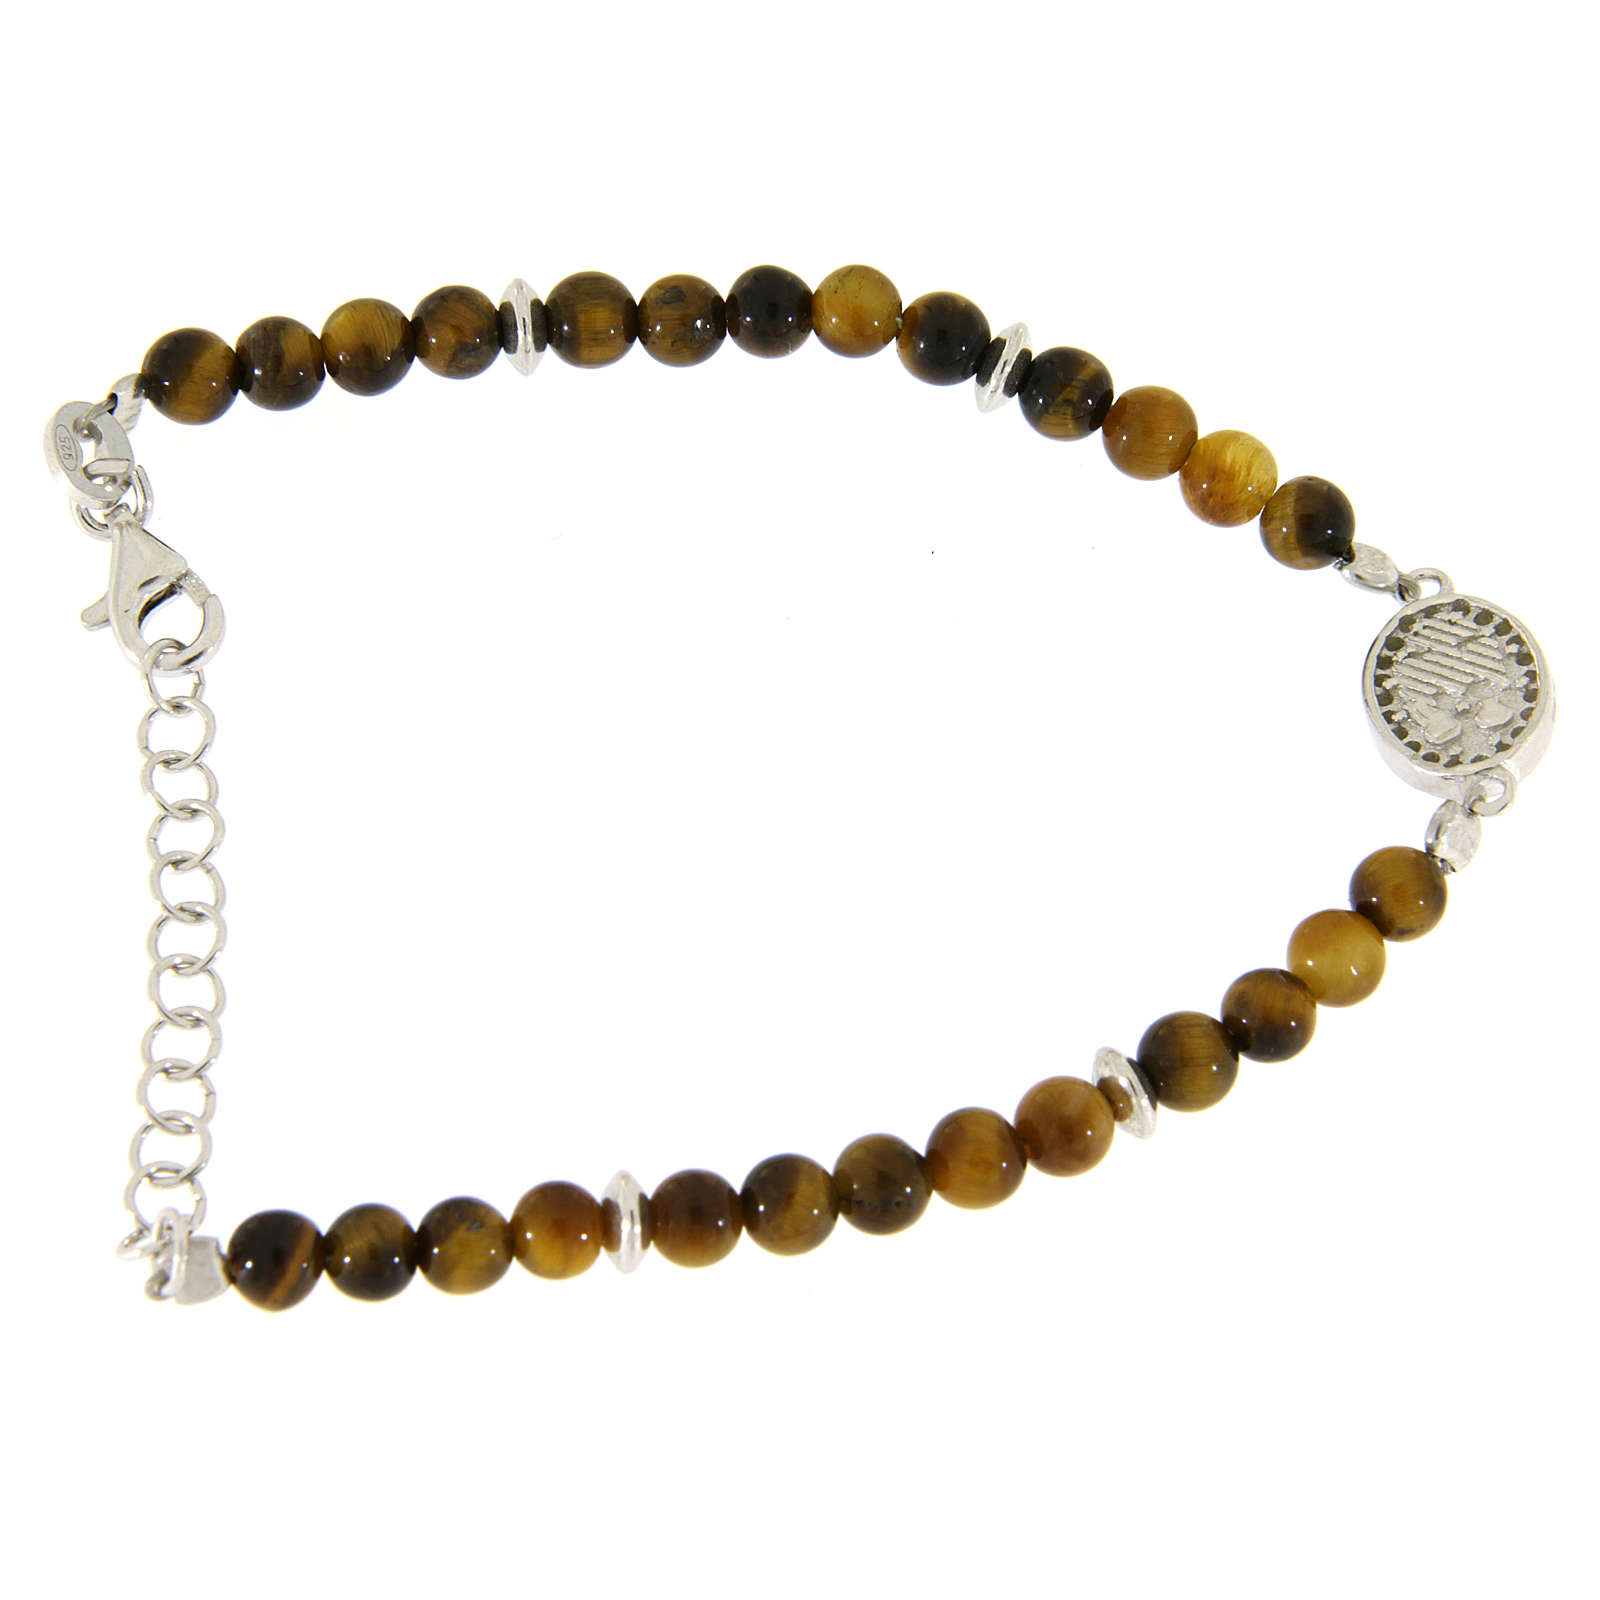 Bracelet with white zirconate medal and tiger's eye beads 4